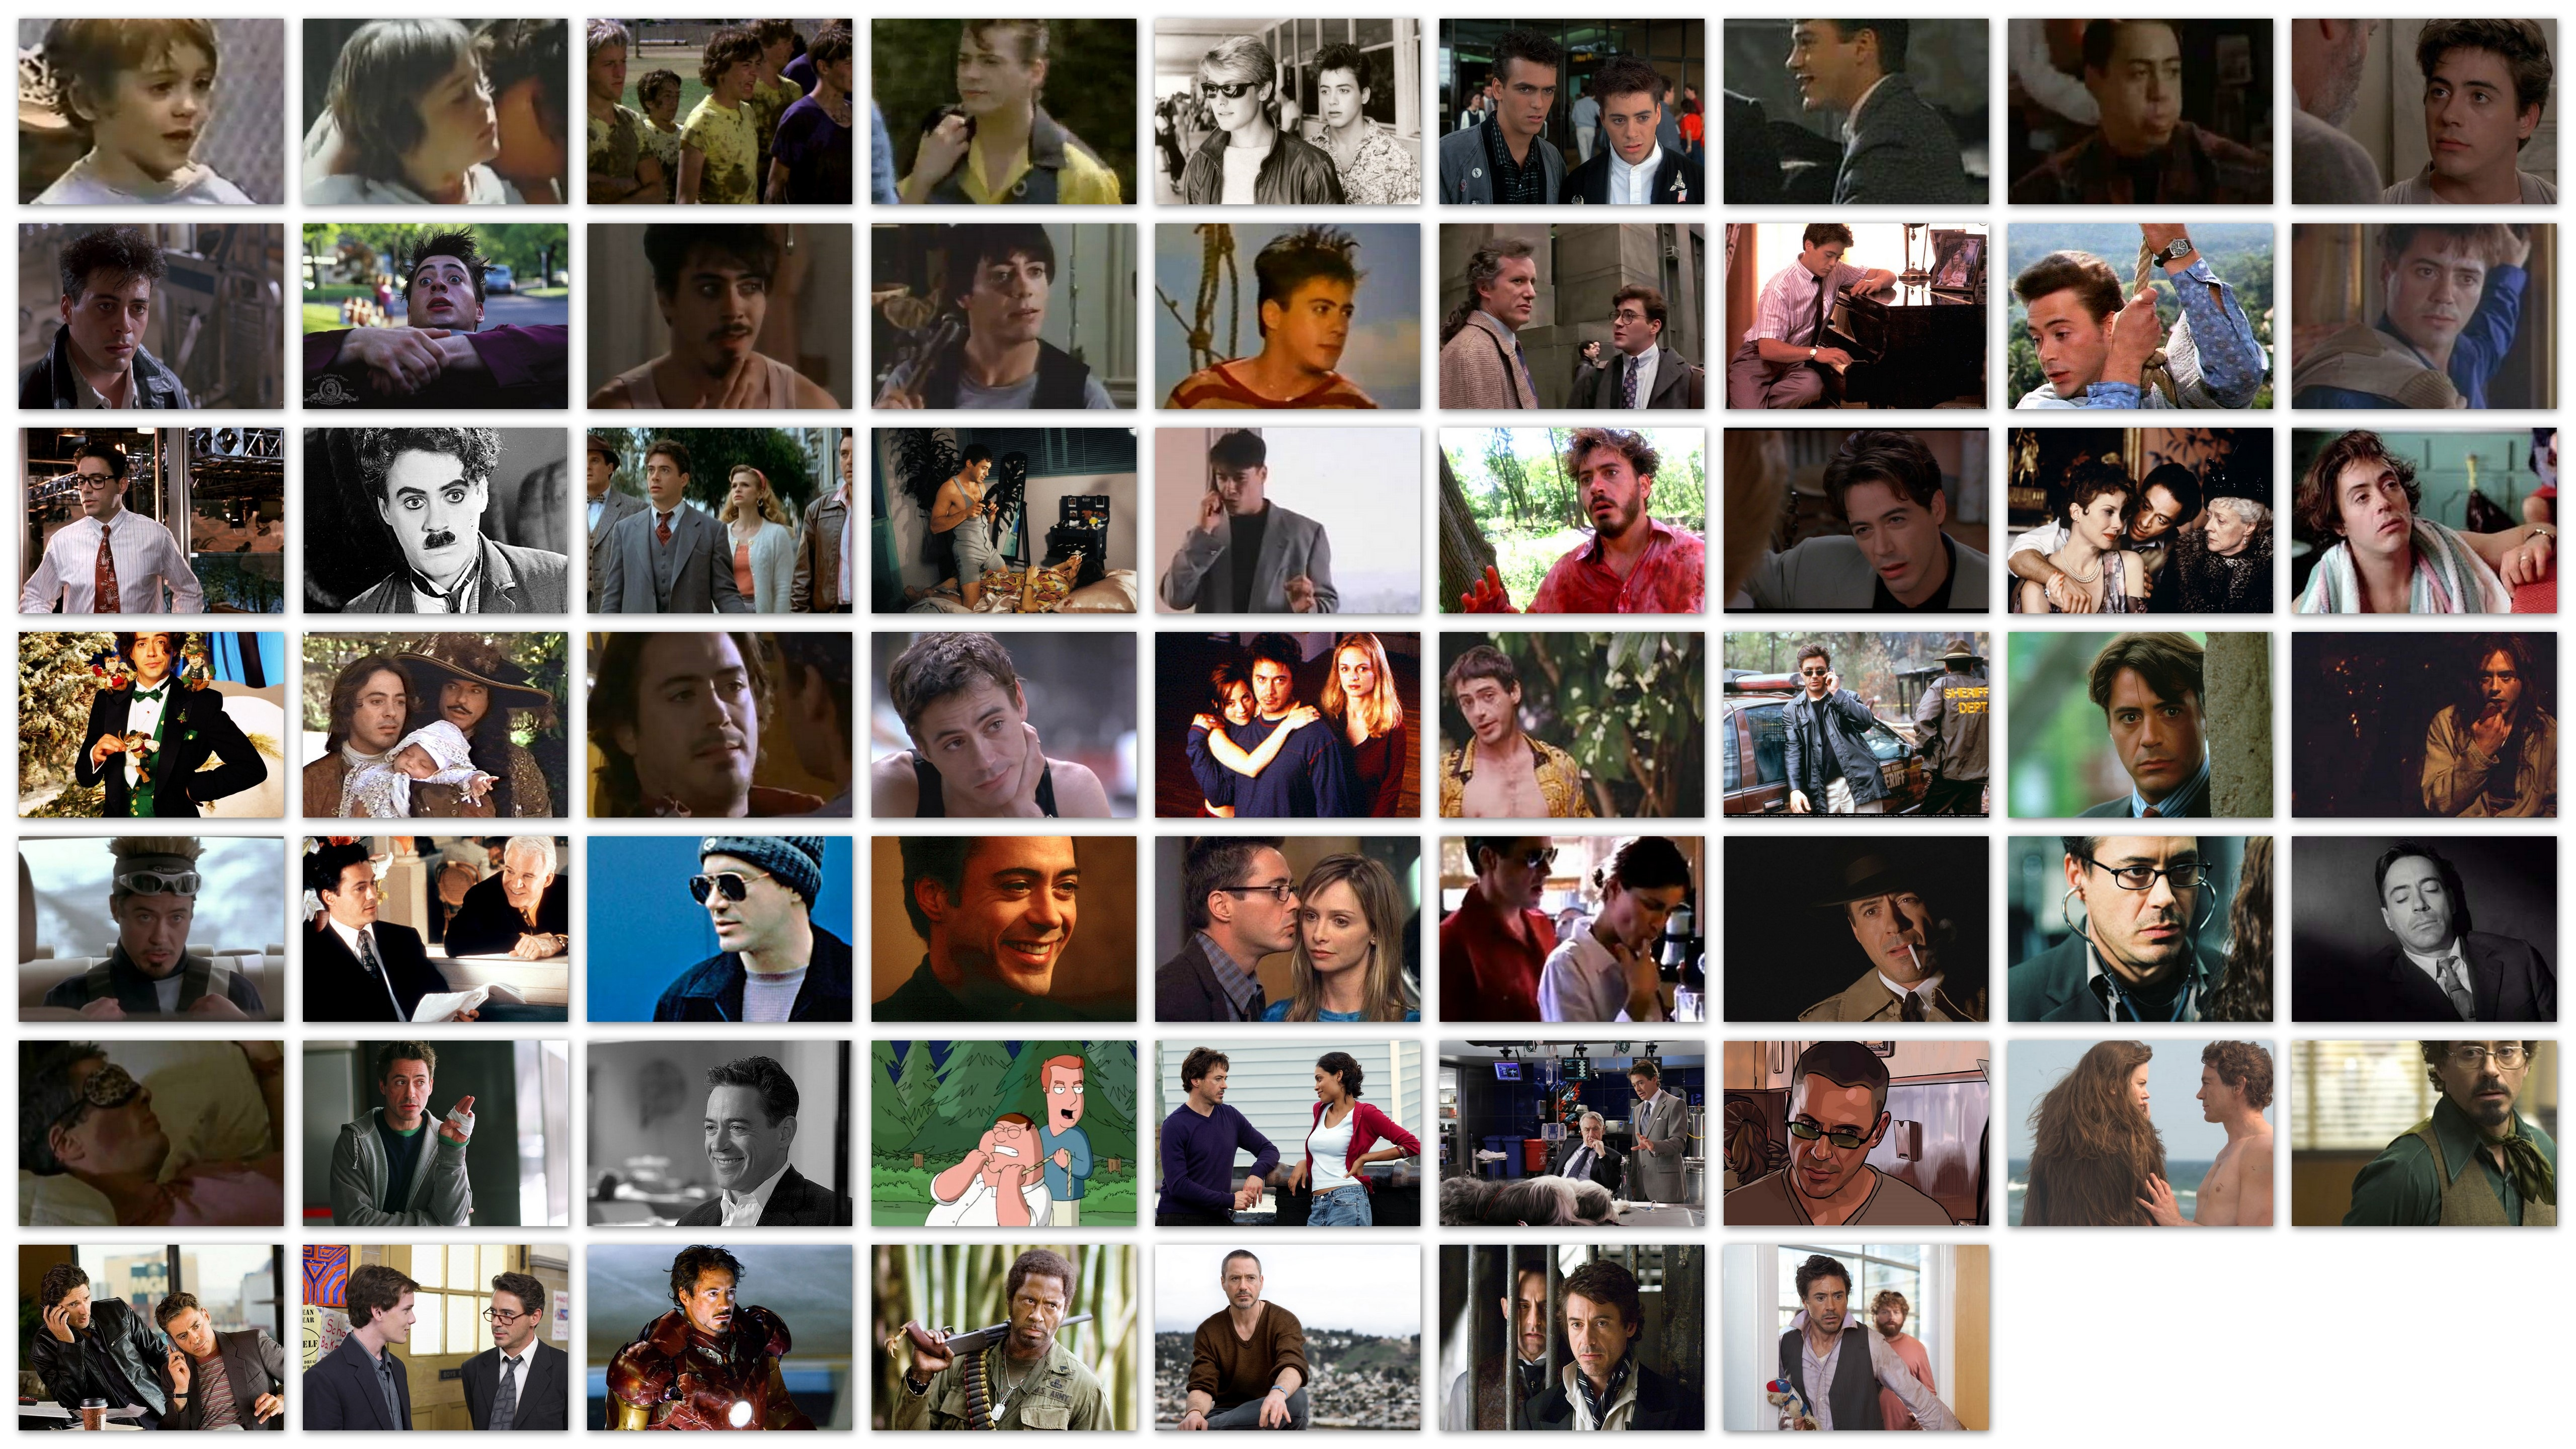 An overview in pictures of the roles of Robert Downey Jr.